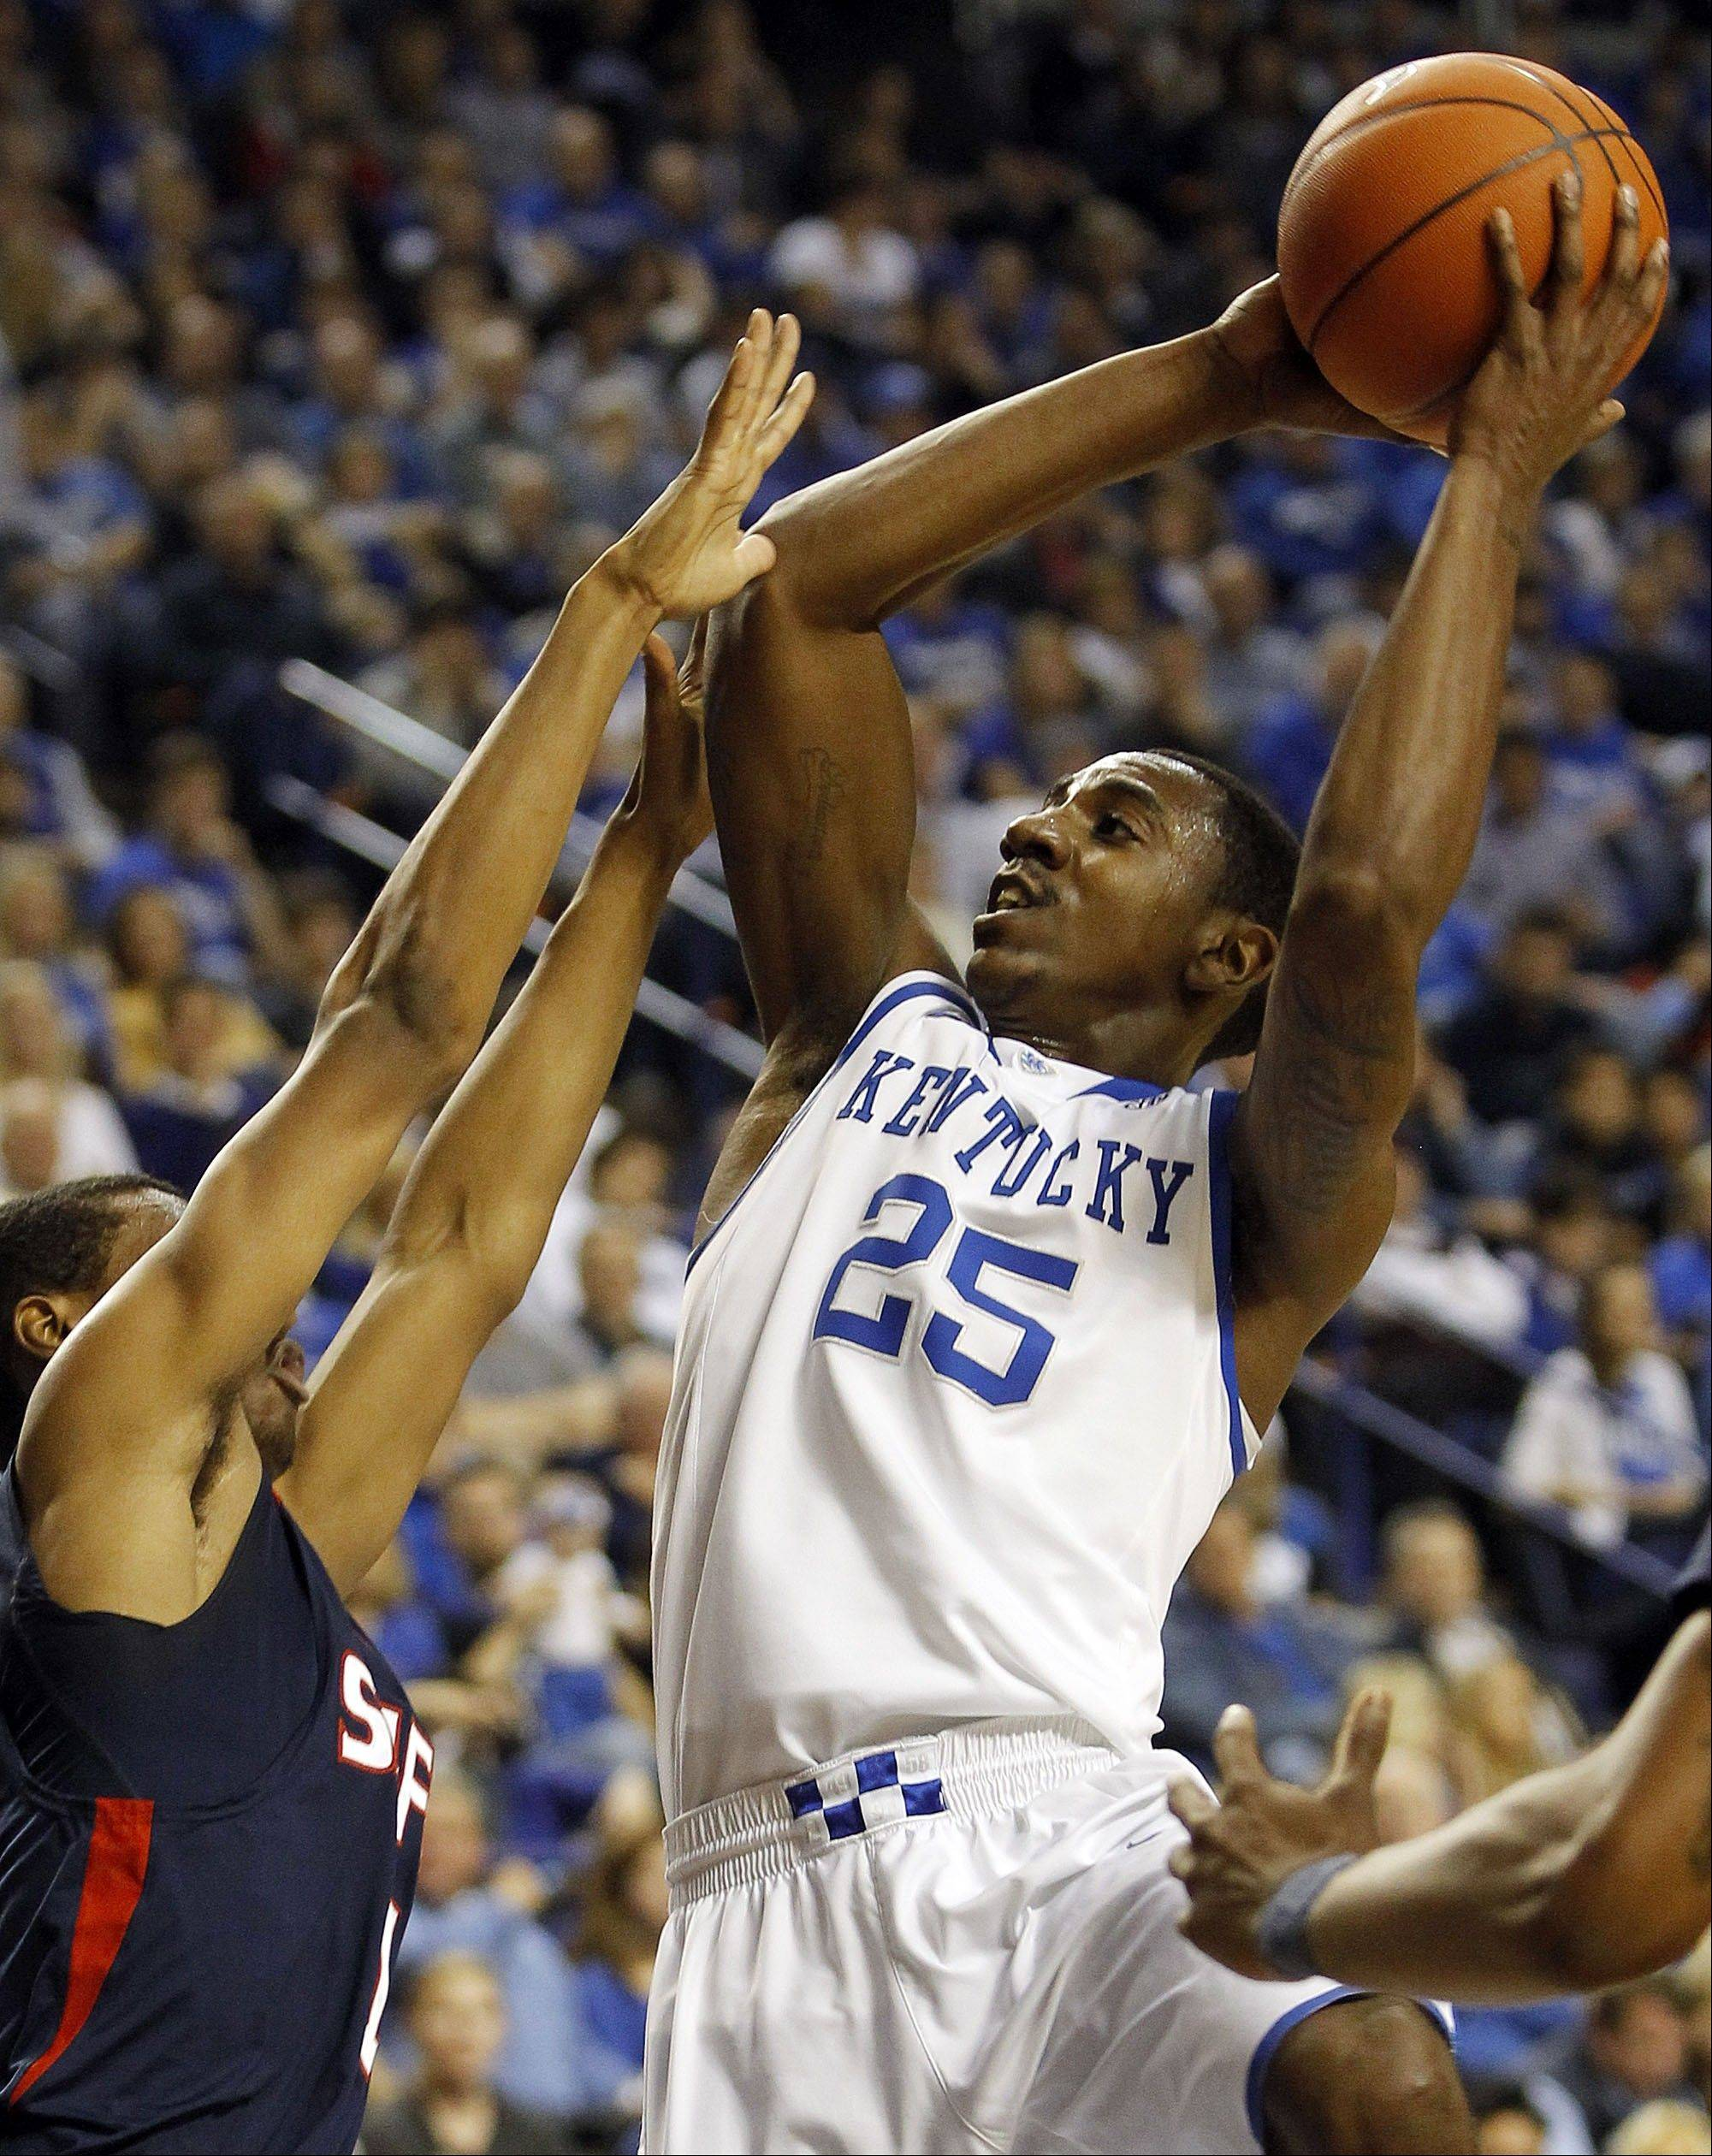 Bull draft pick Marquis Teague helped lead Kentucky to the national championship this year as a freshman point guard.